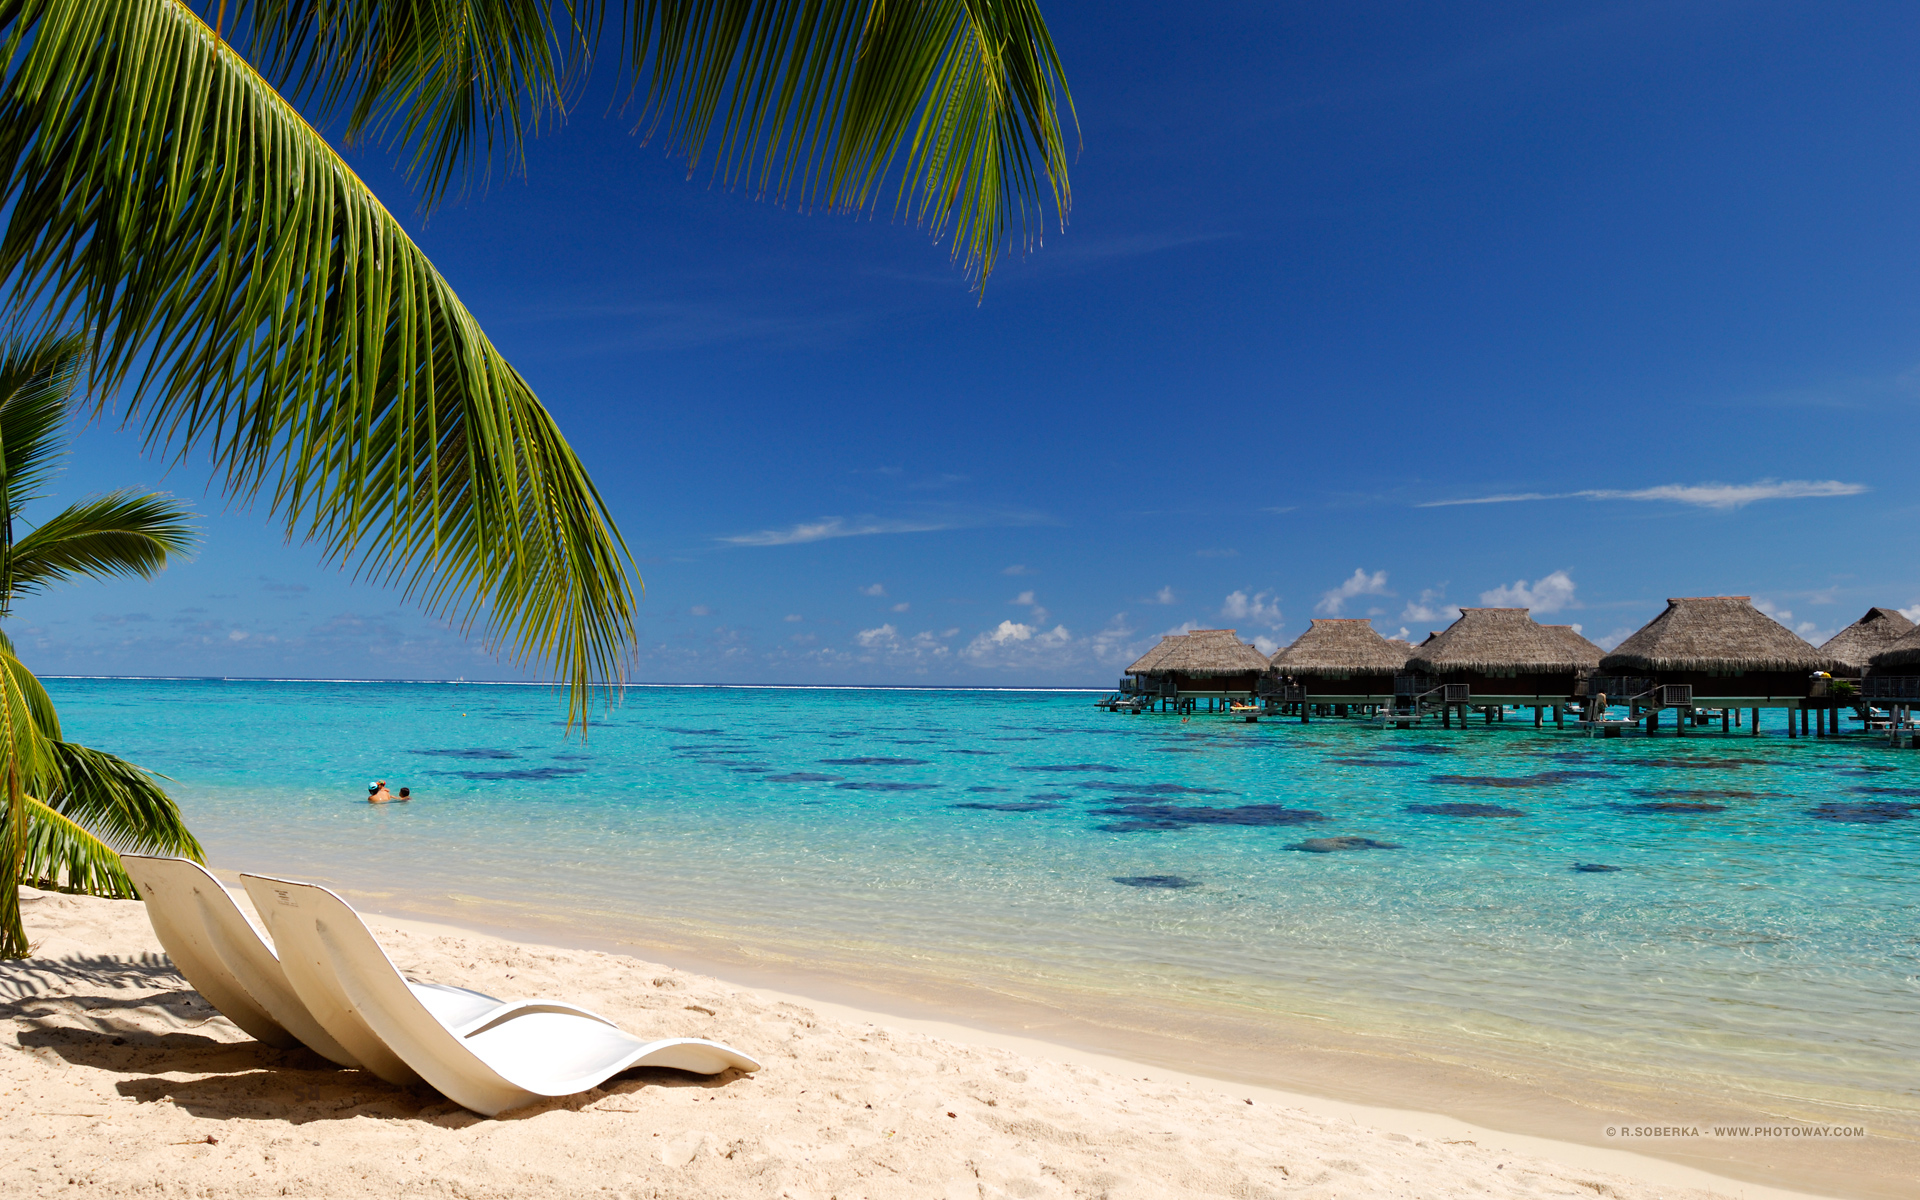 Hd Tropical Island Beach Paradise Wallpapers And Backgrounds: De Vacances Wallpaper